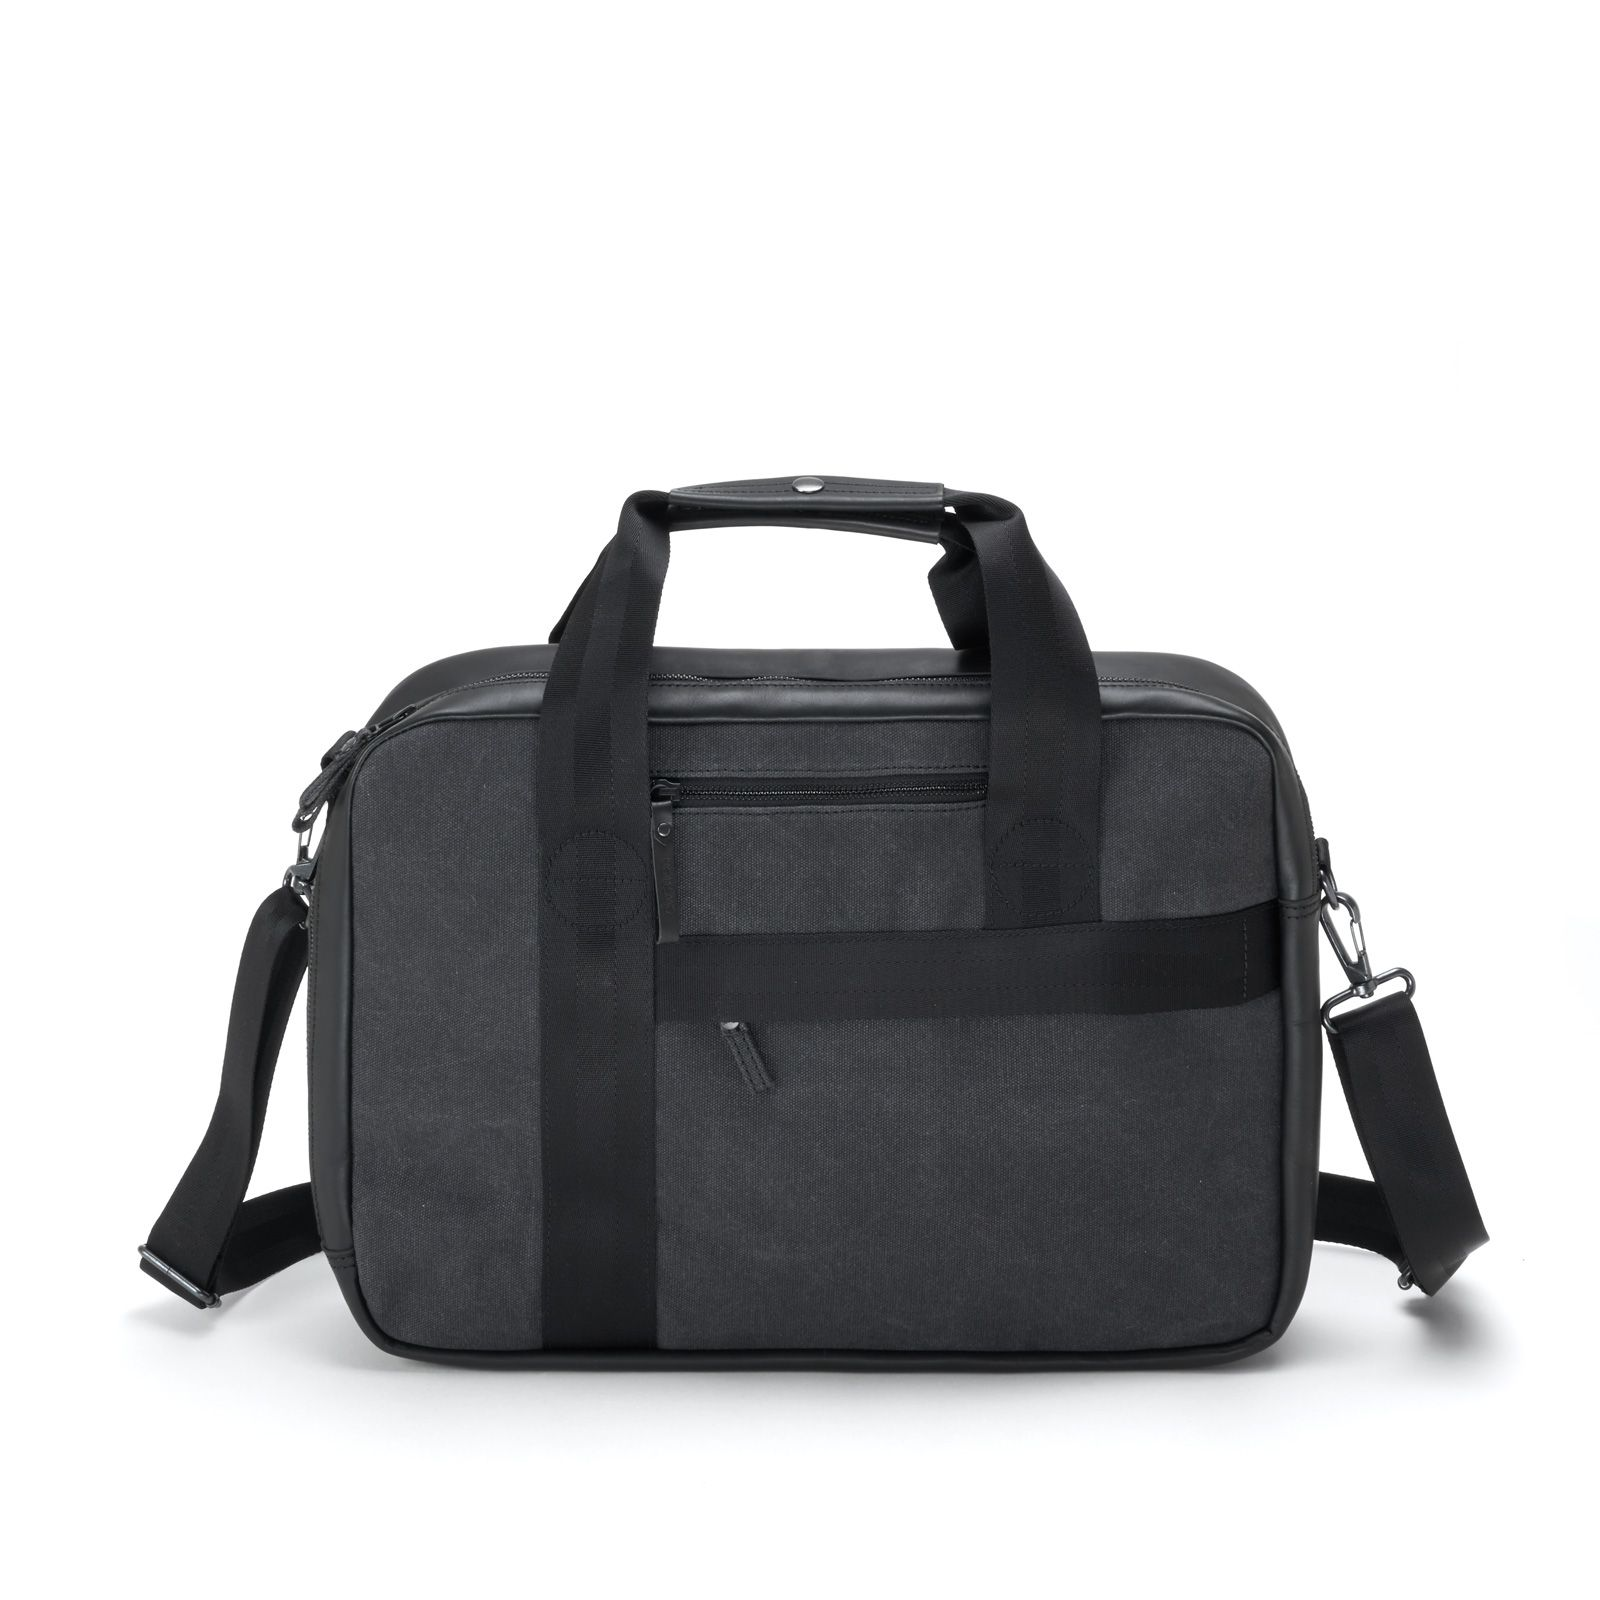 Office Bag - Graphite Leather